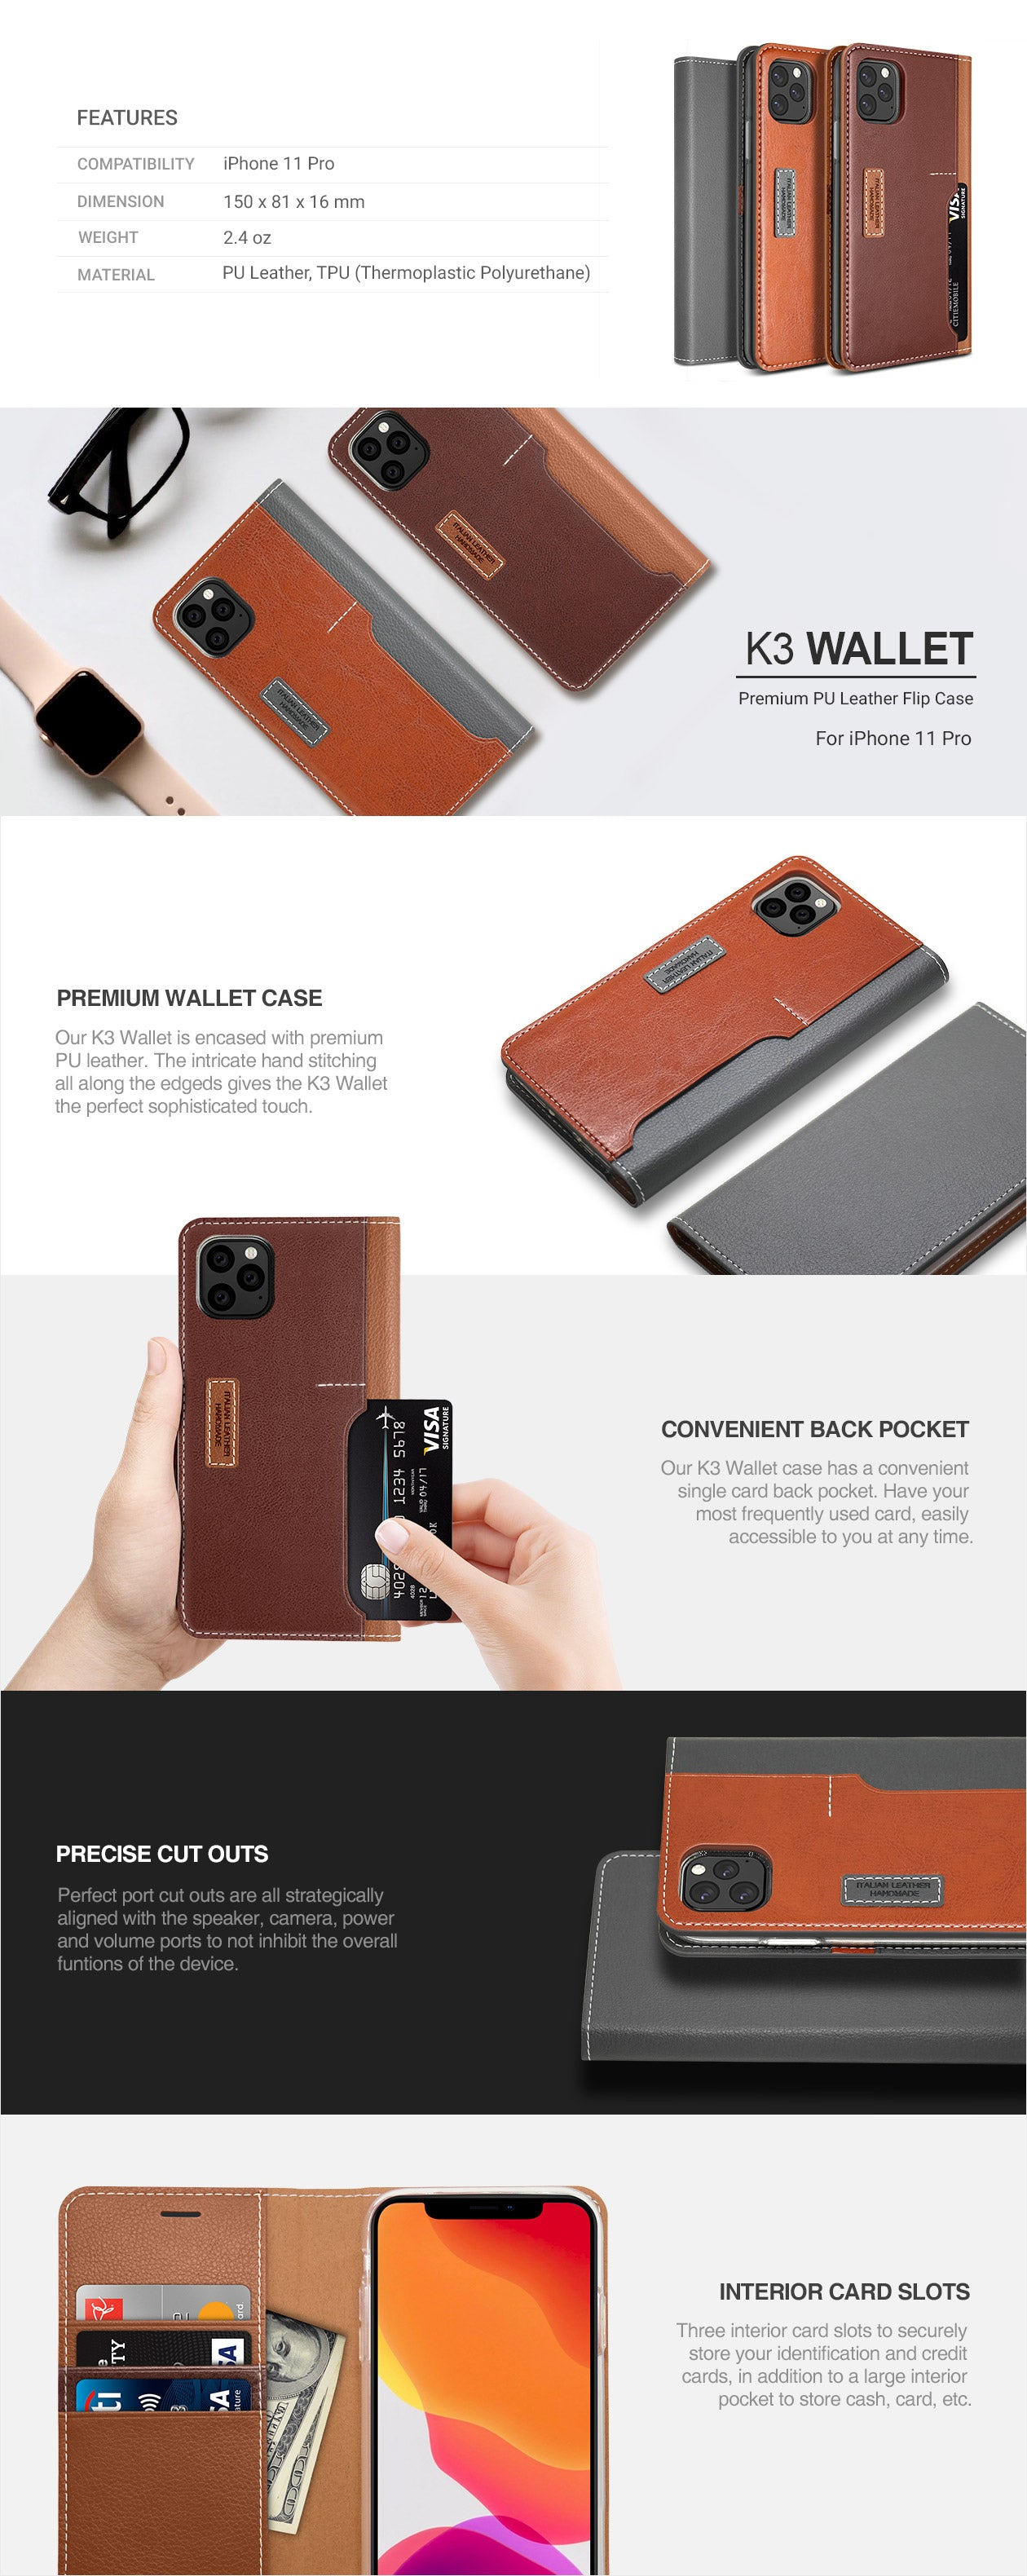 Obliq iPhone 11 Pro Case K3 Wallet